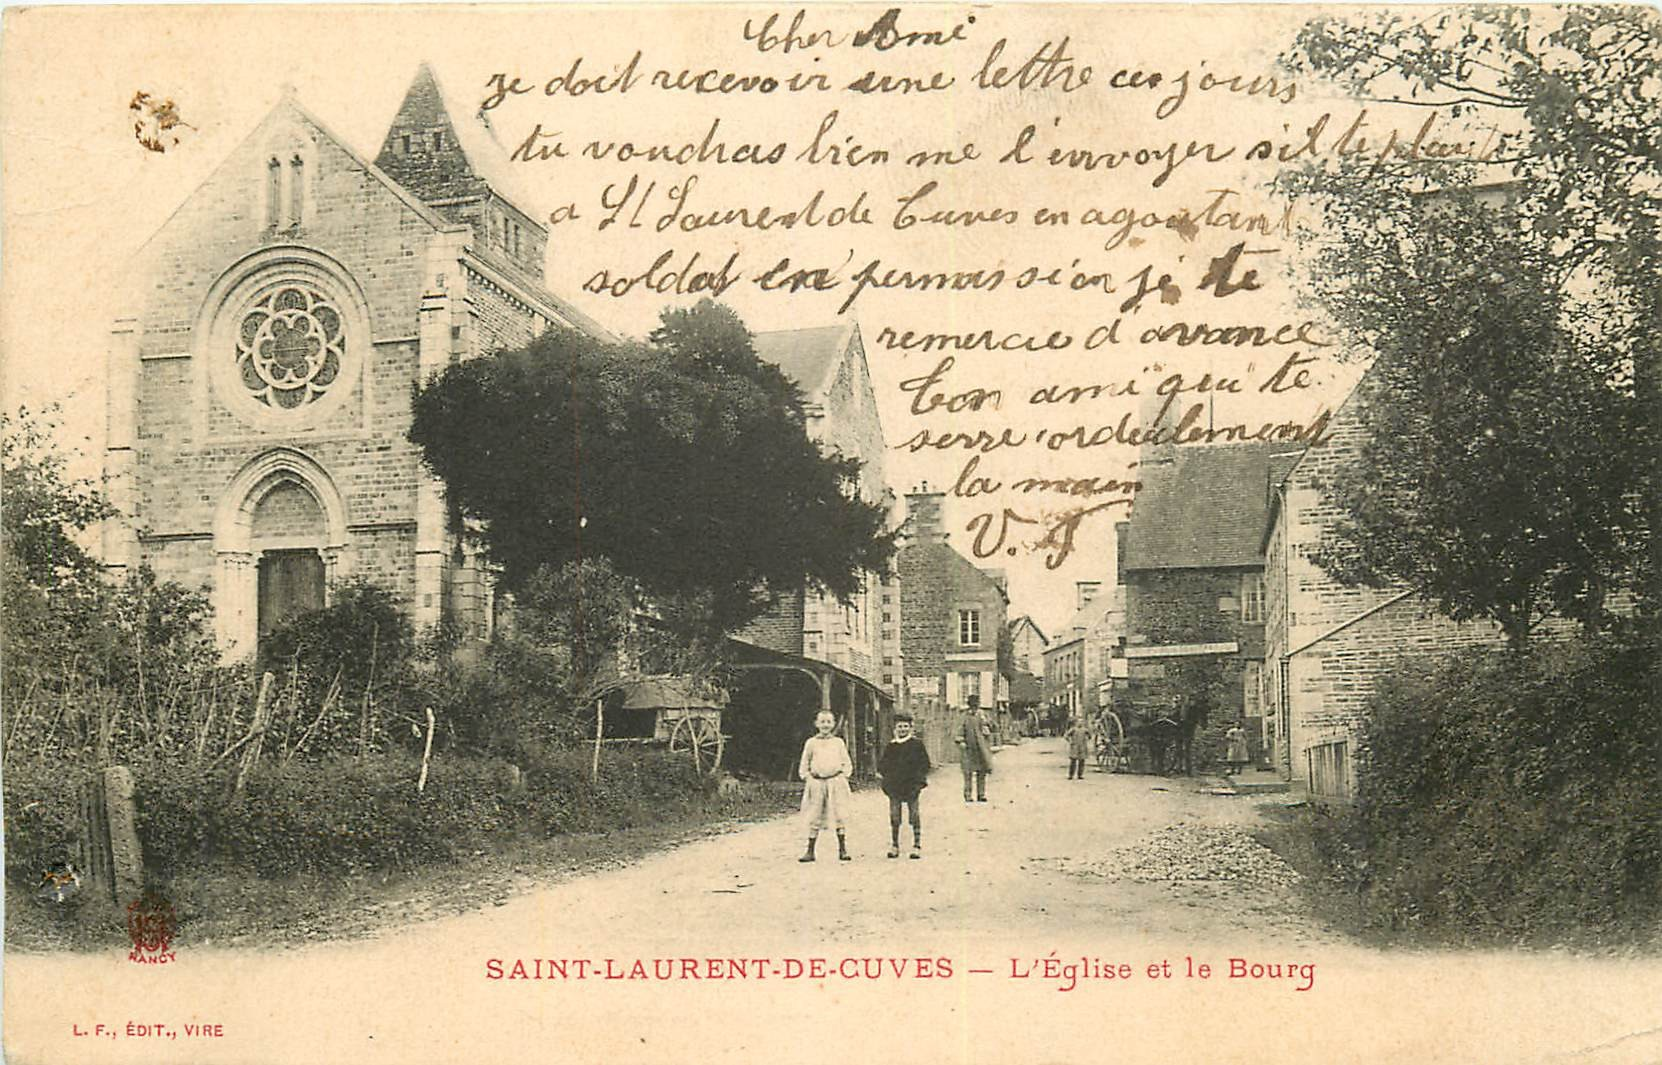 WW 50 SAINT-LAURENT-DE-CUVES. Eglise et le Bourg 1904